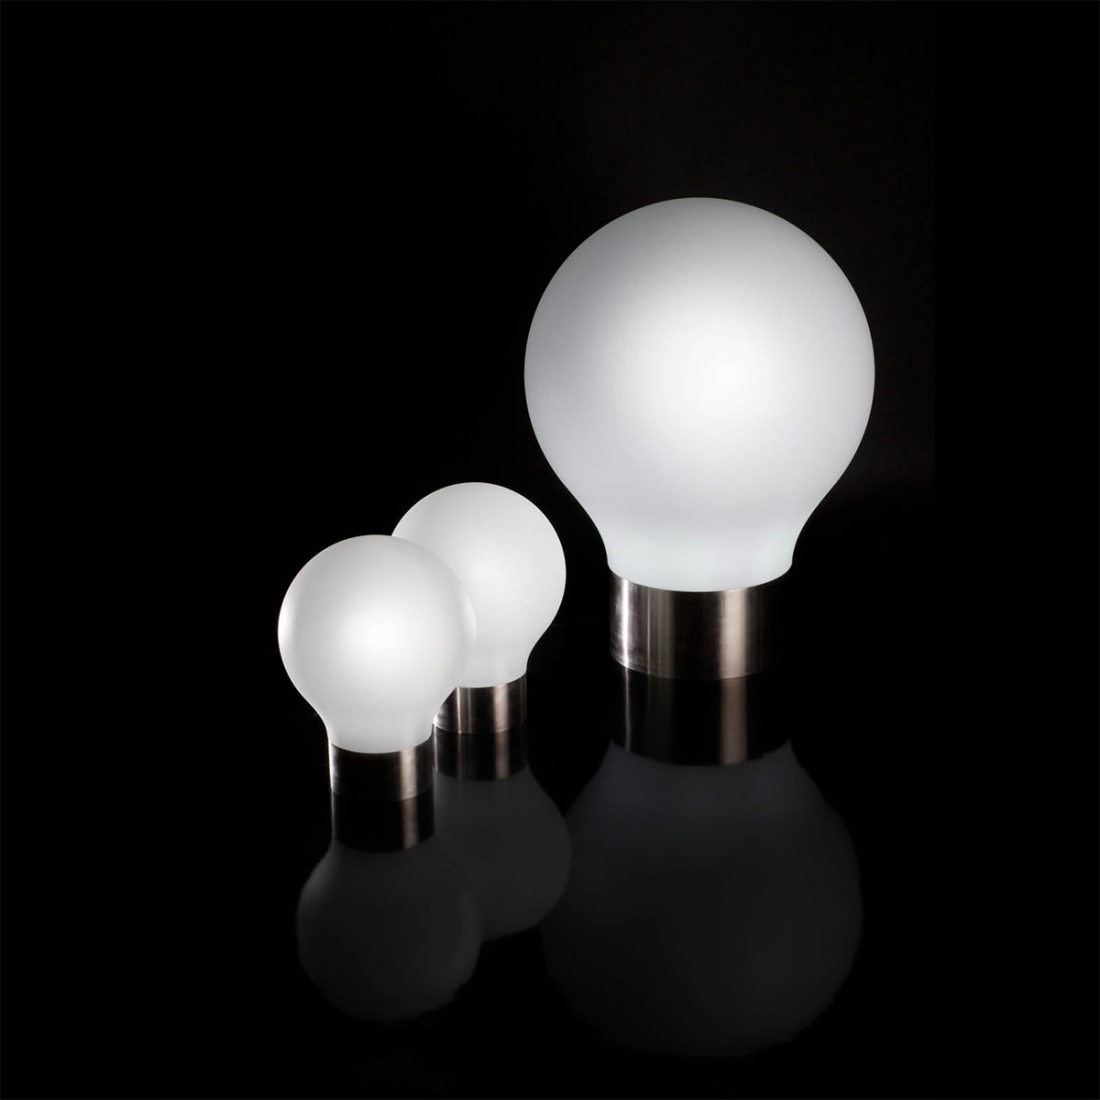 lampe vondom the second light led blanc transats design vondom. Black Bedroom Furniture Sets. Home Design Ideas